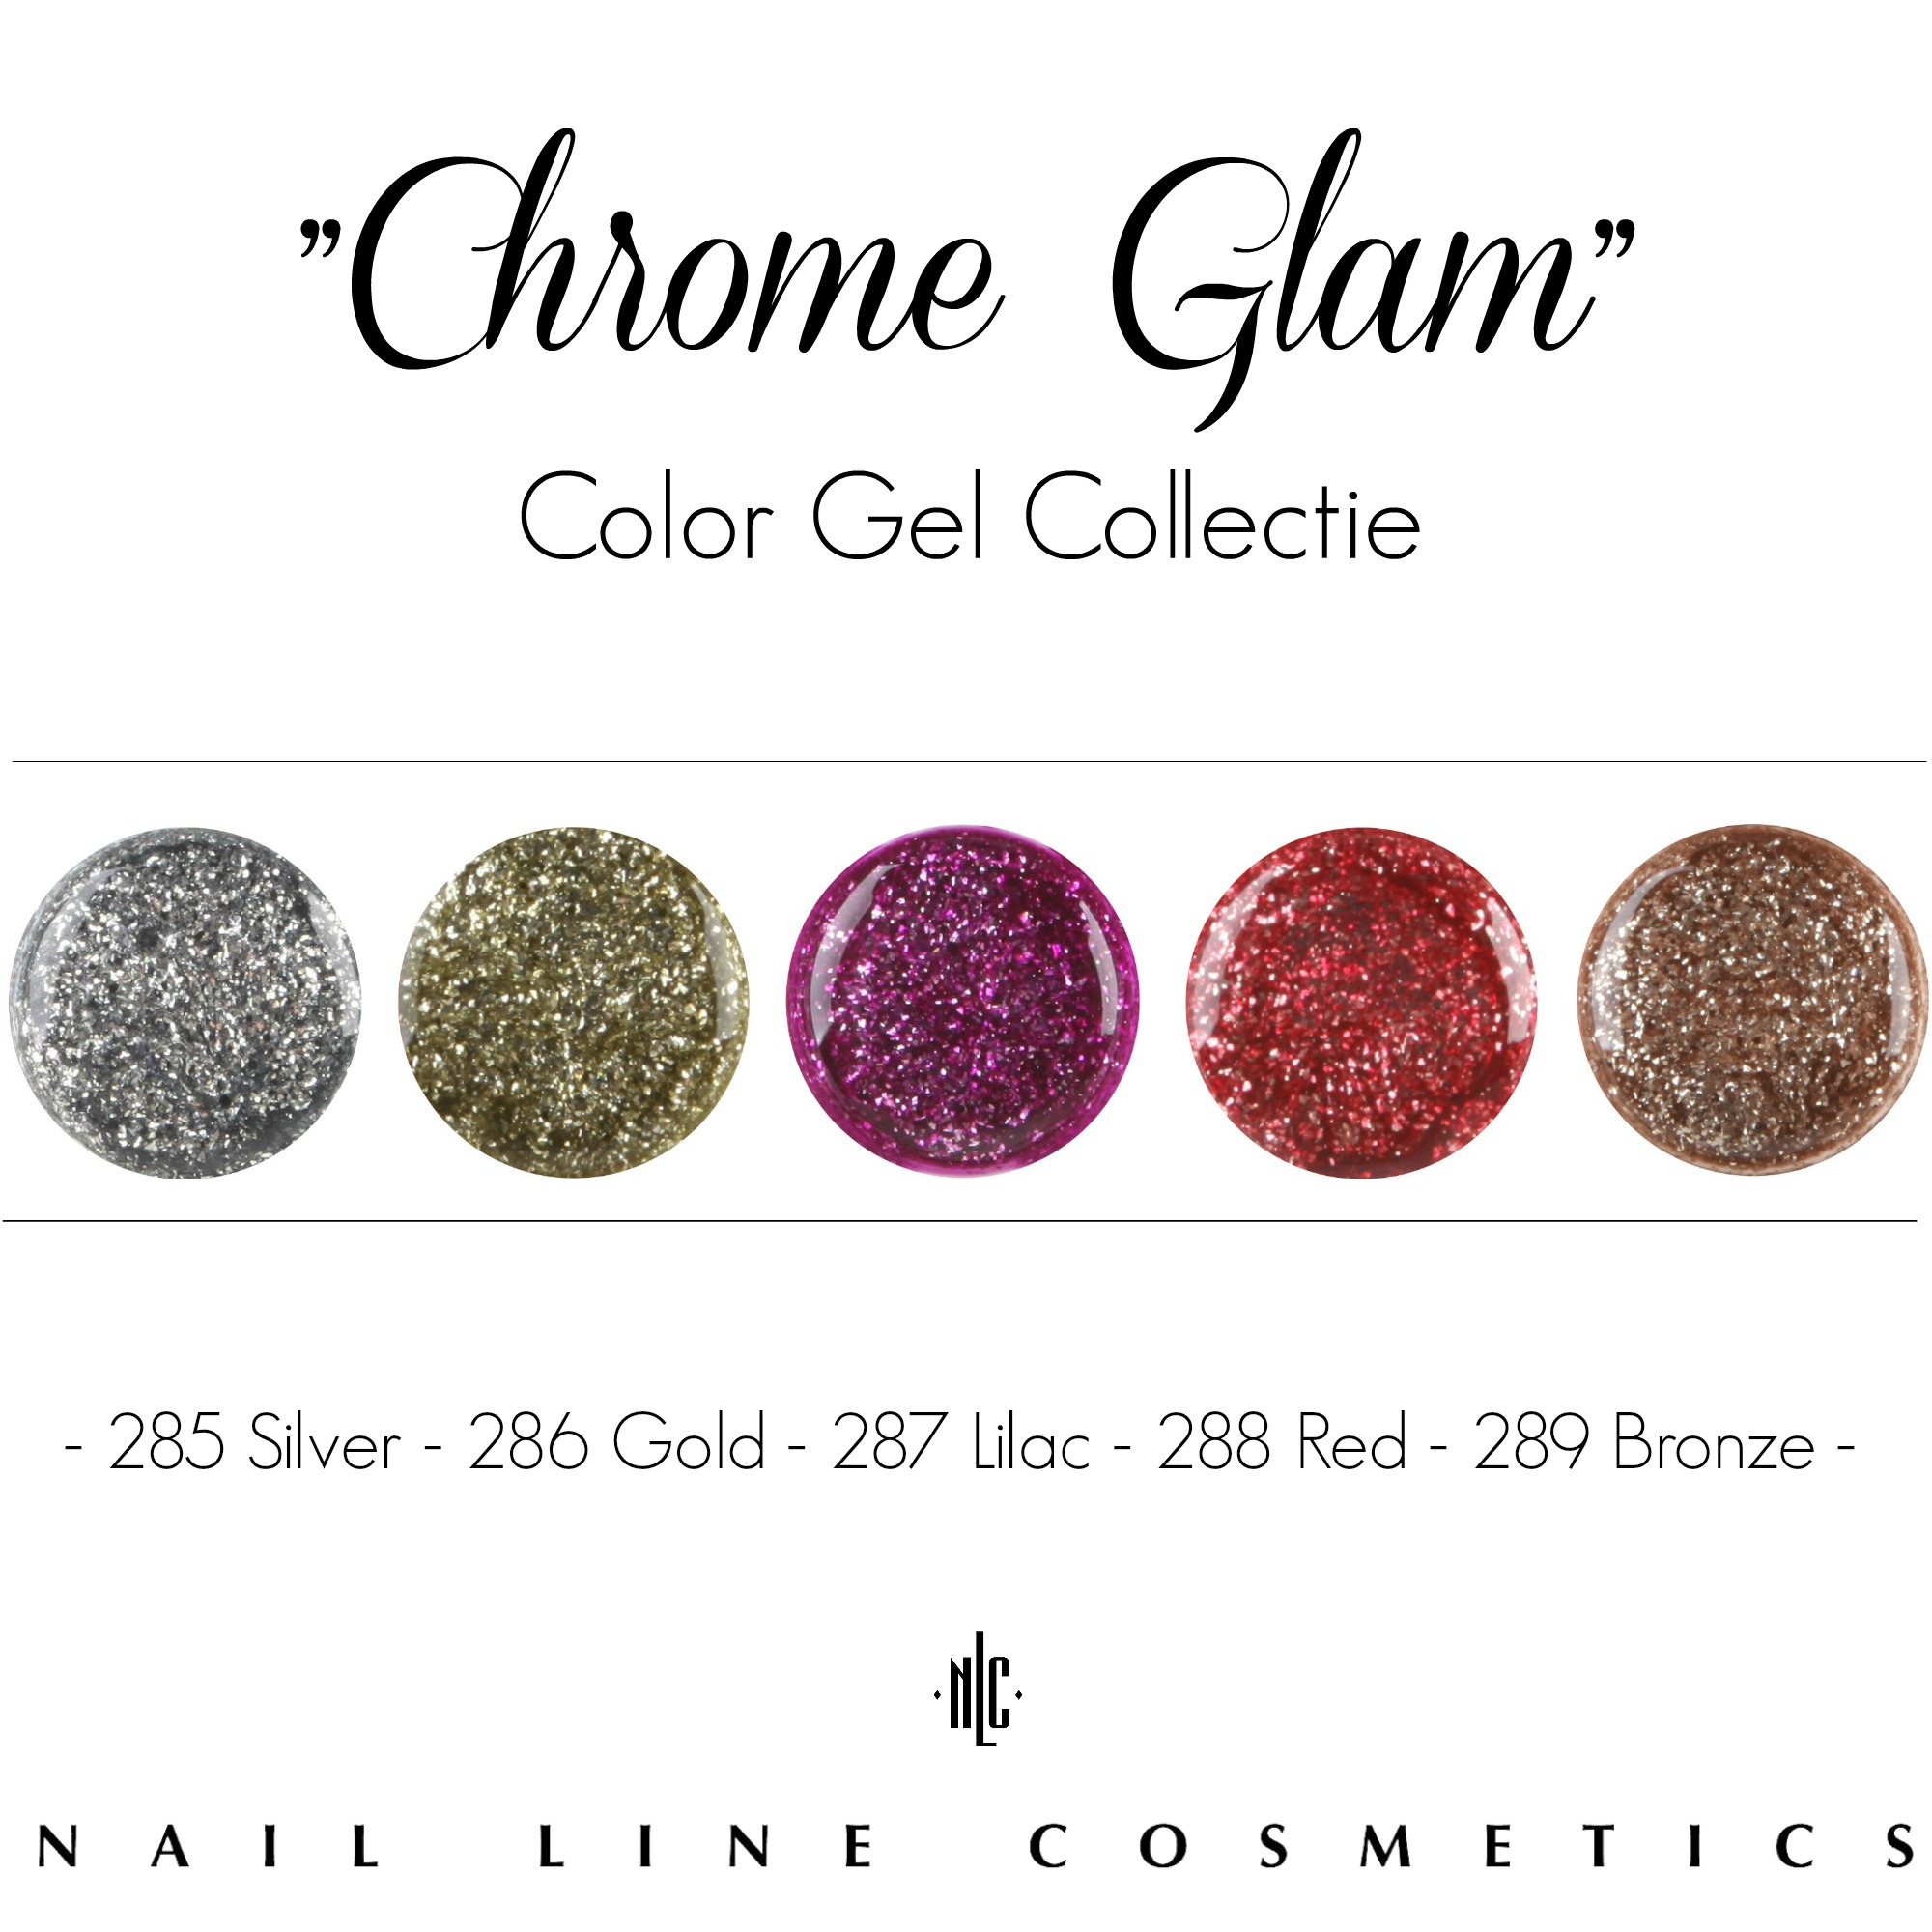 new chrome glam color gels